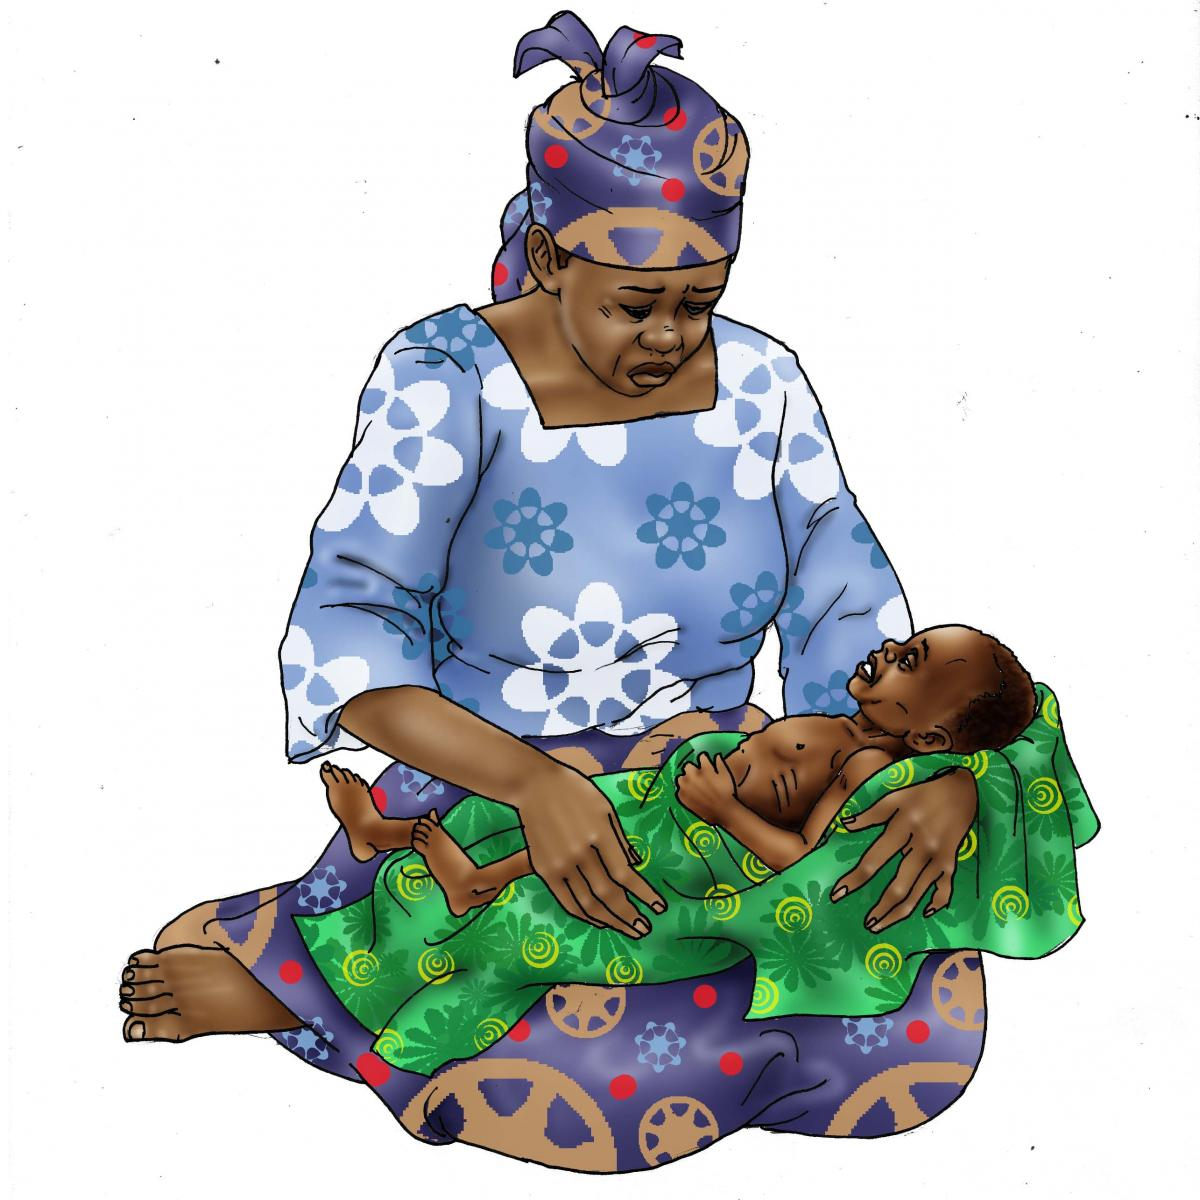 Sick Baby Health Care - Dehydrated and Malnourished baby 0-6 mo - 01 - Niger